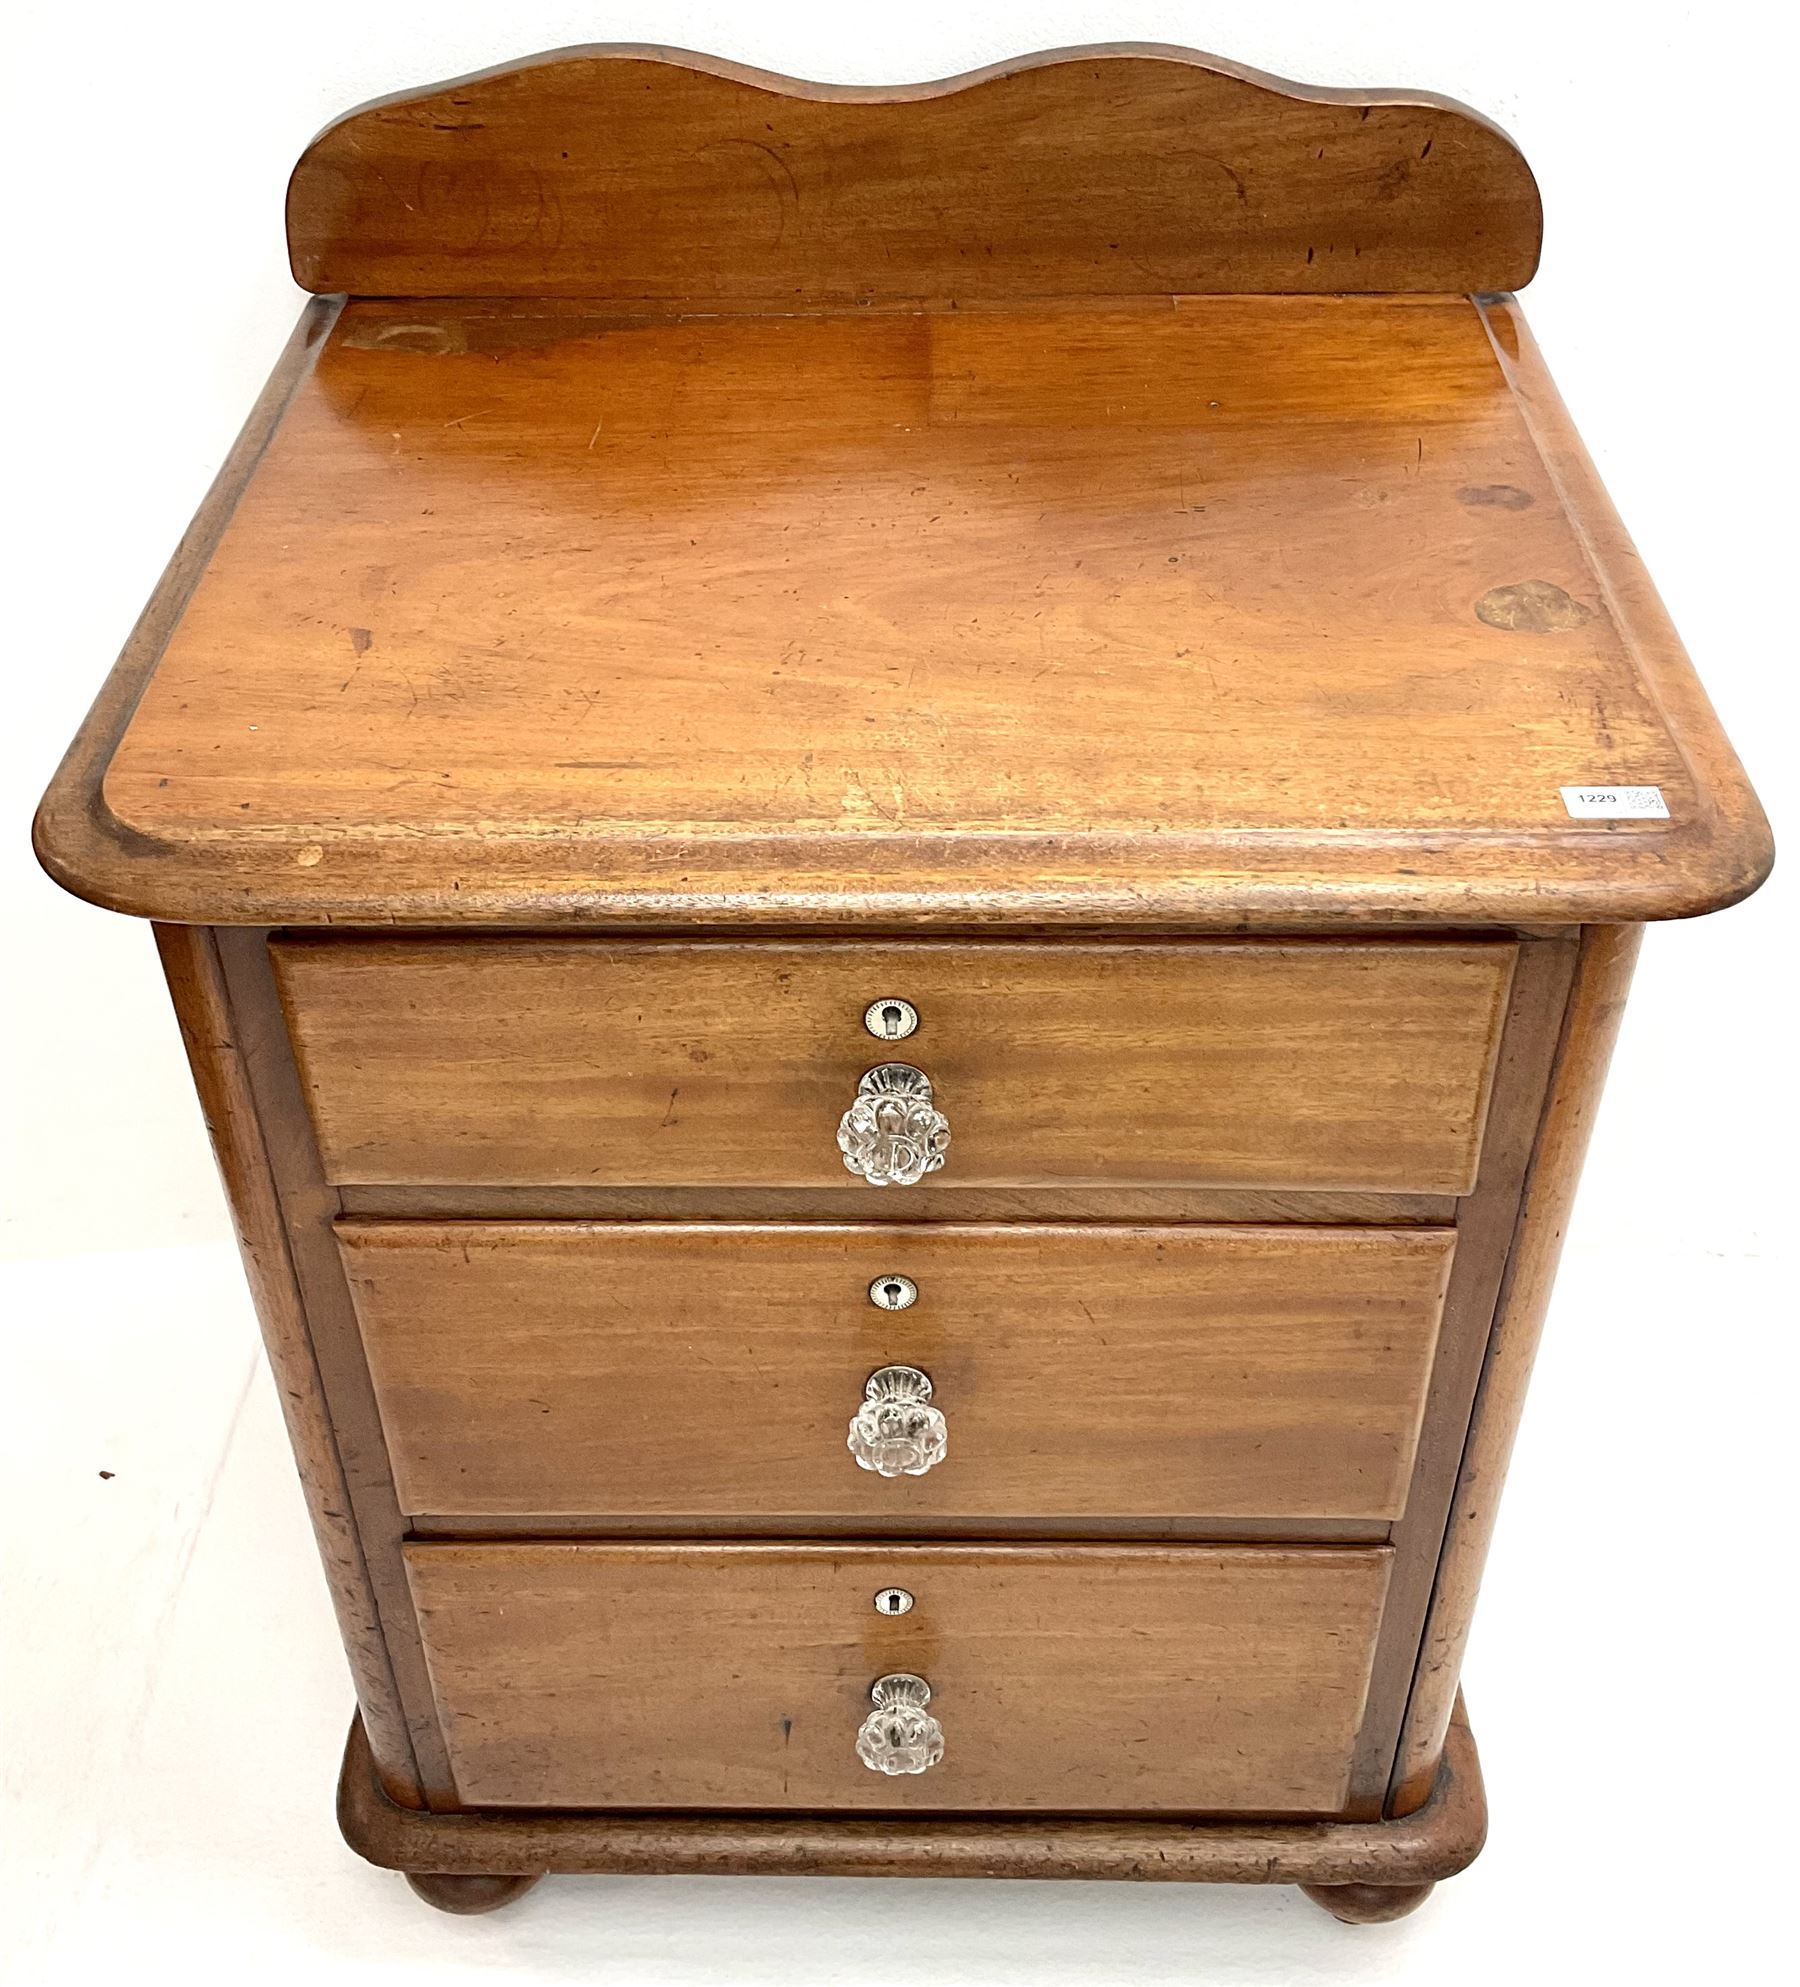 Victorian mahogany pedestal chest - Image 3 of 4